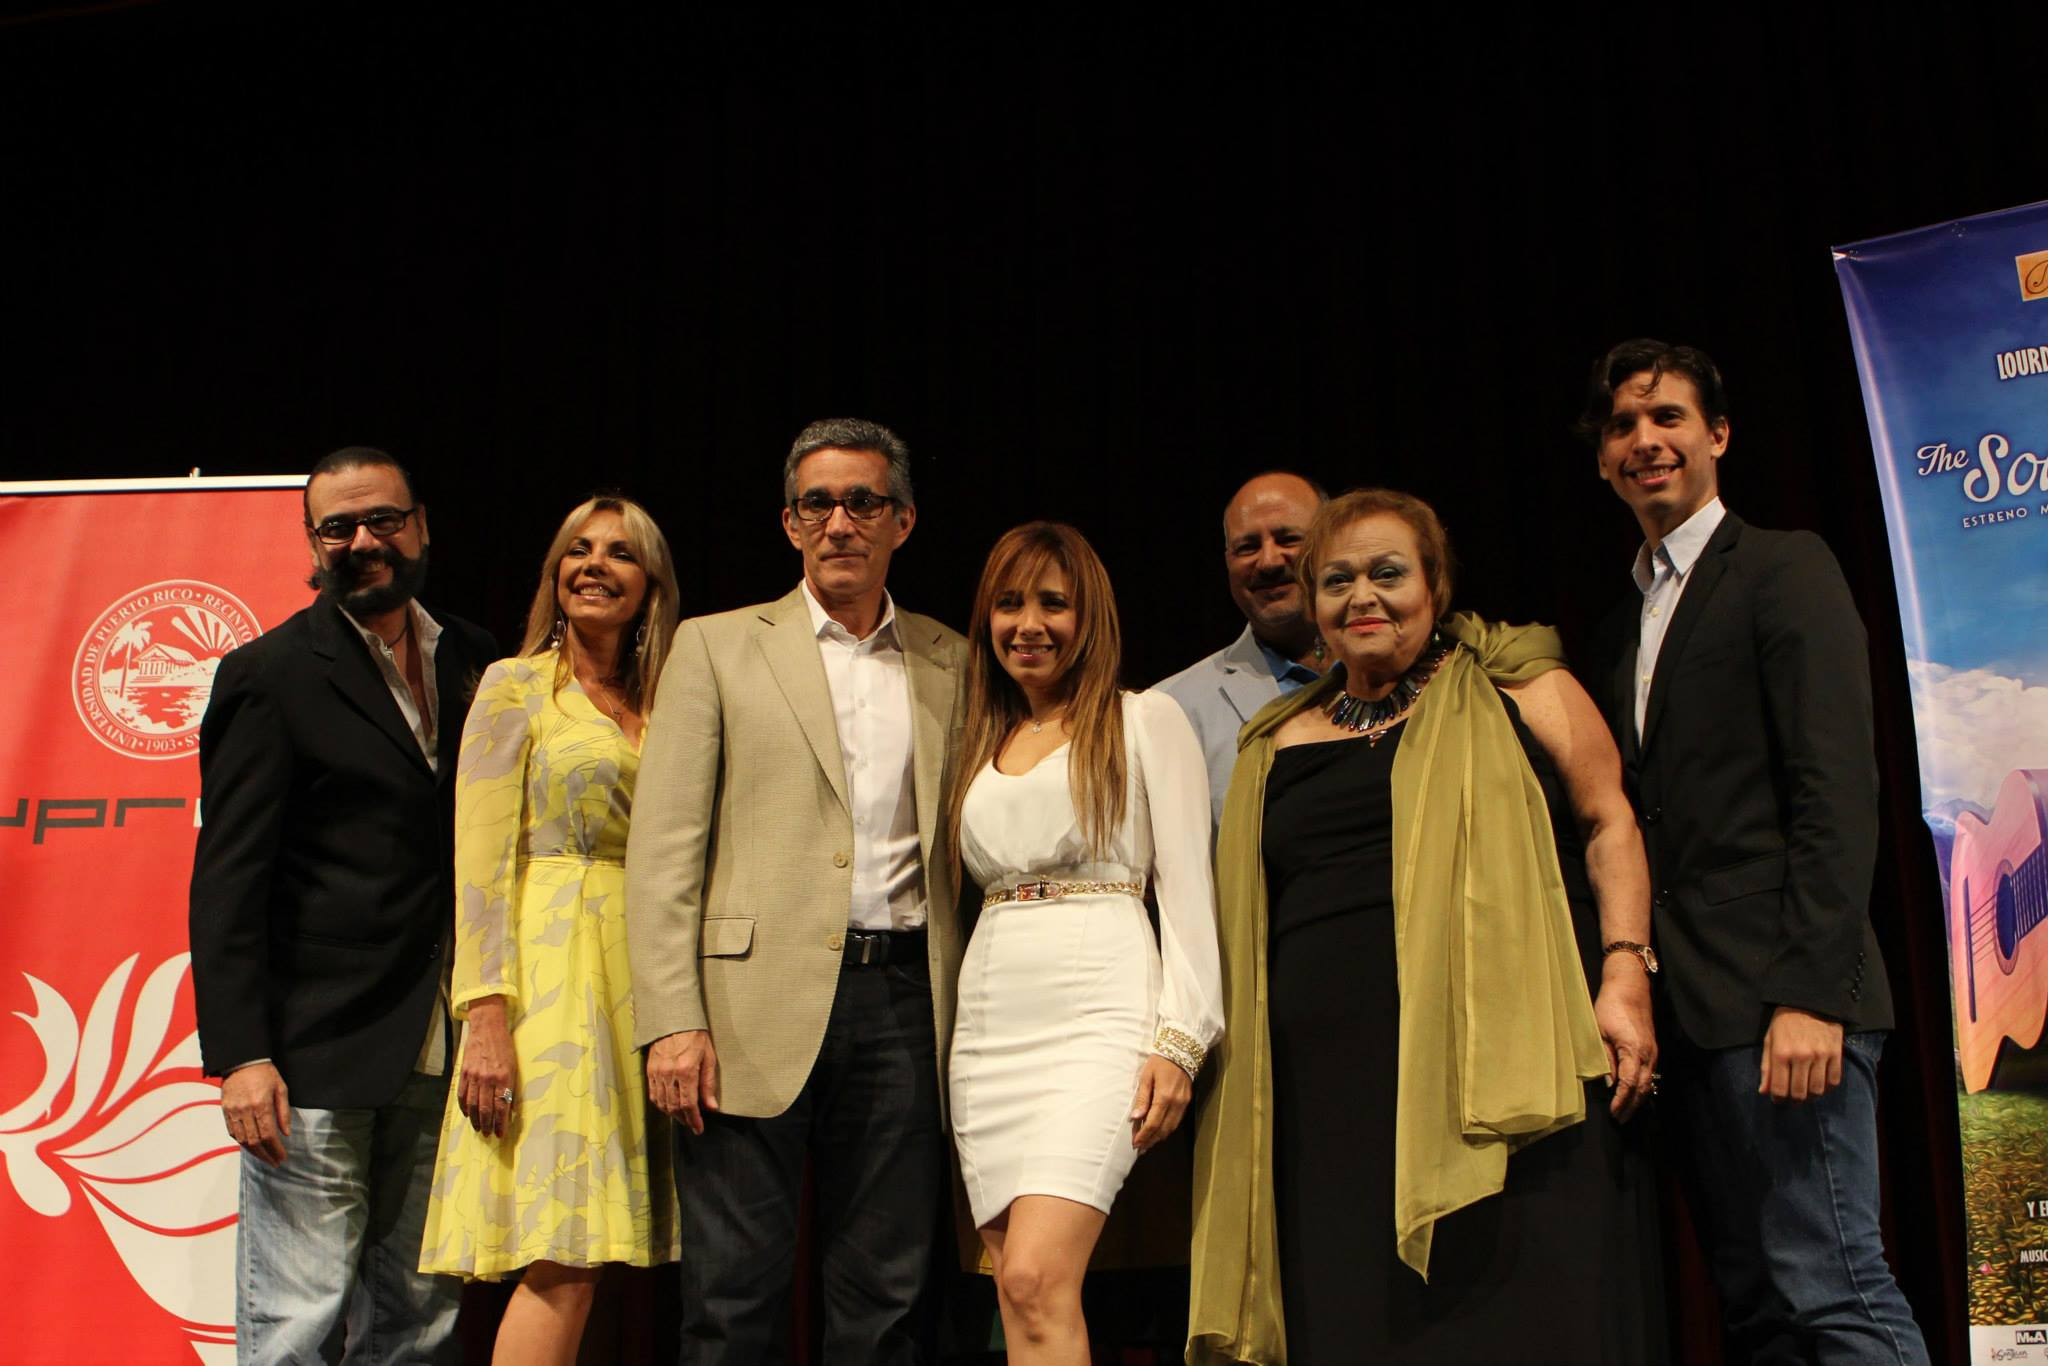 Elenco-The-Sound-of-Music